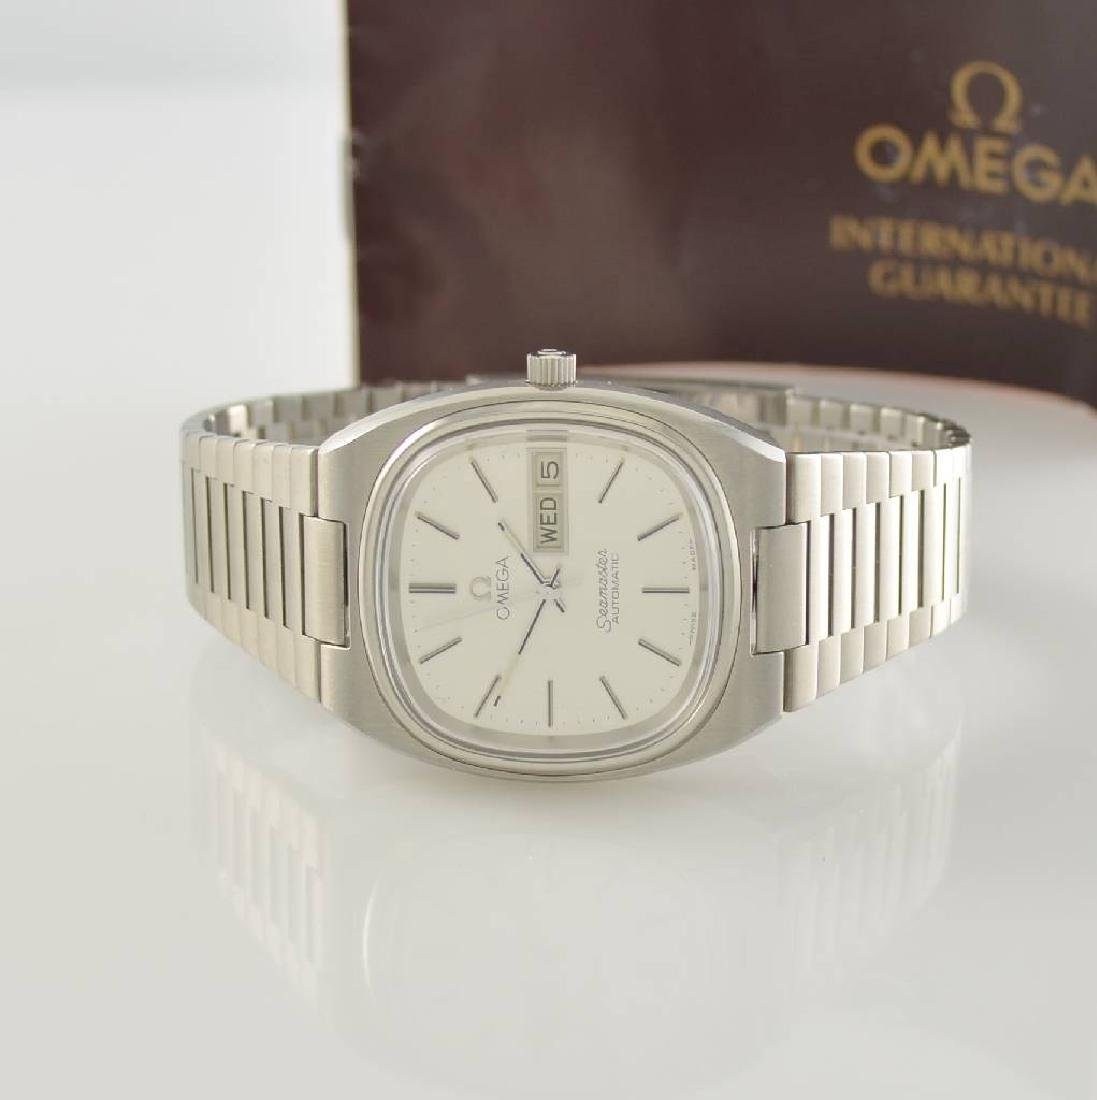 OMEGA Seamaster stainless steel gents wristwatch